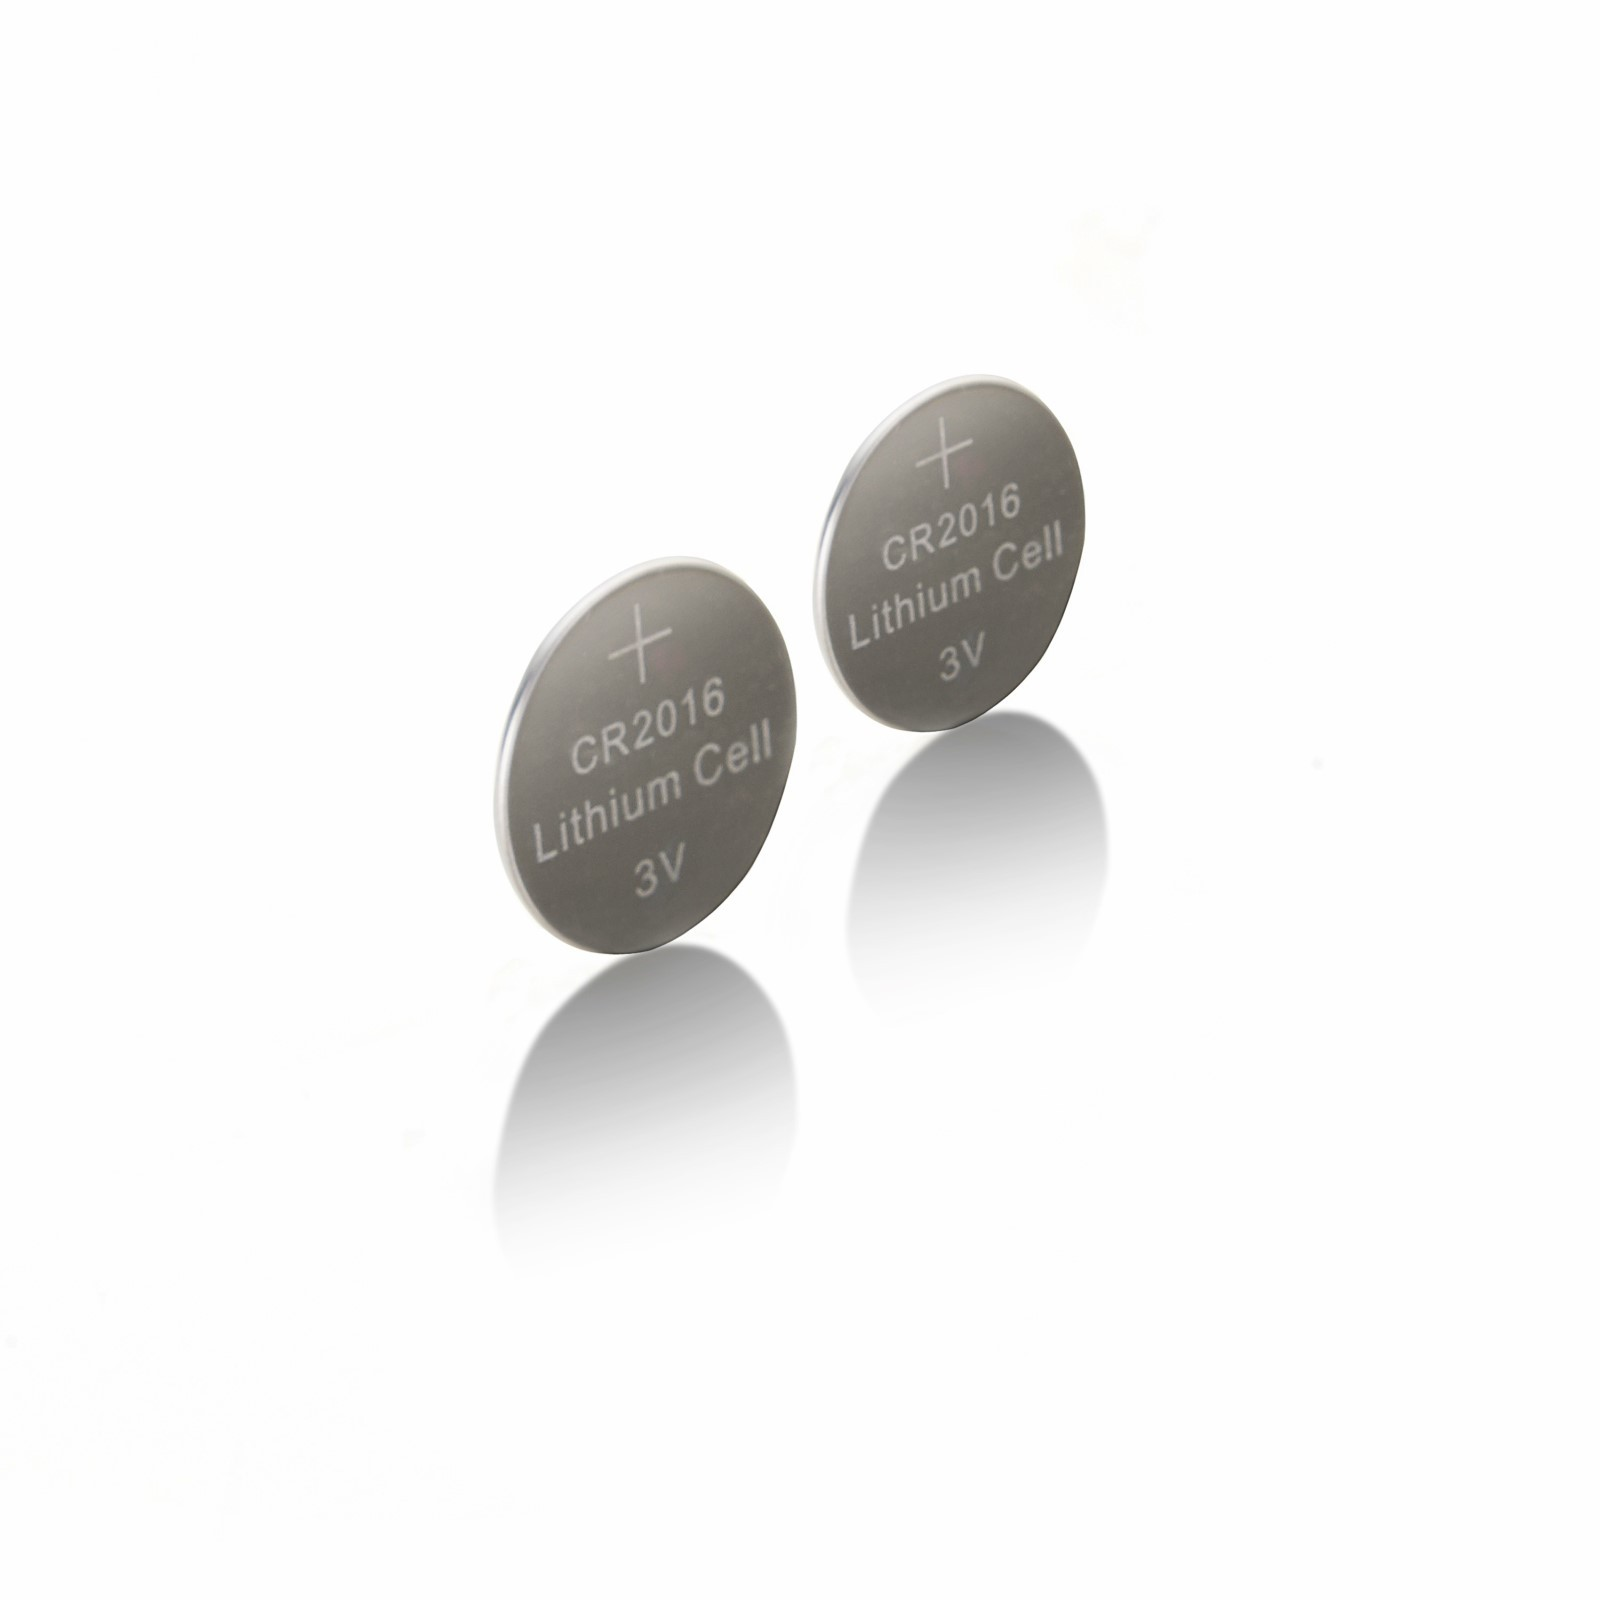 Dorcy 41 4105 Mastercell Lithium 2016 Coin Cell Batteries